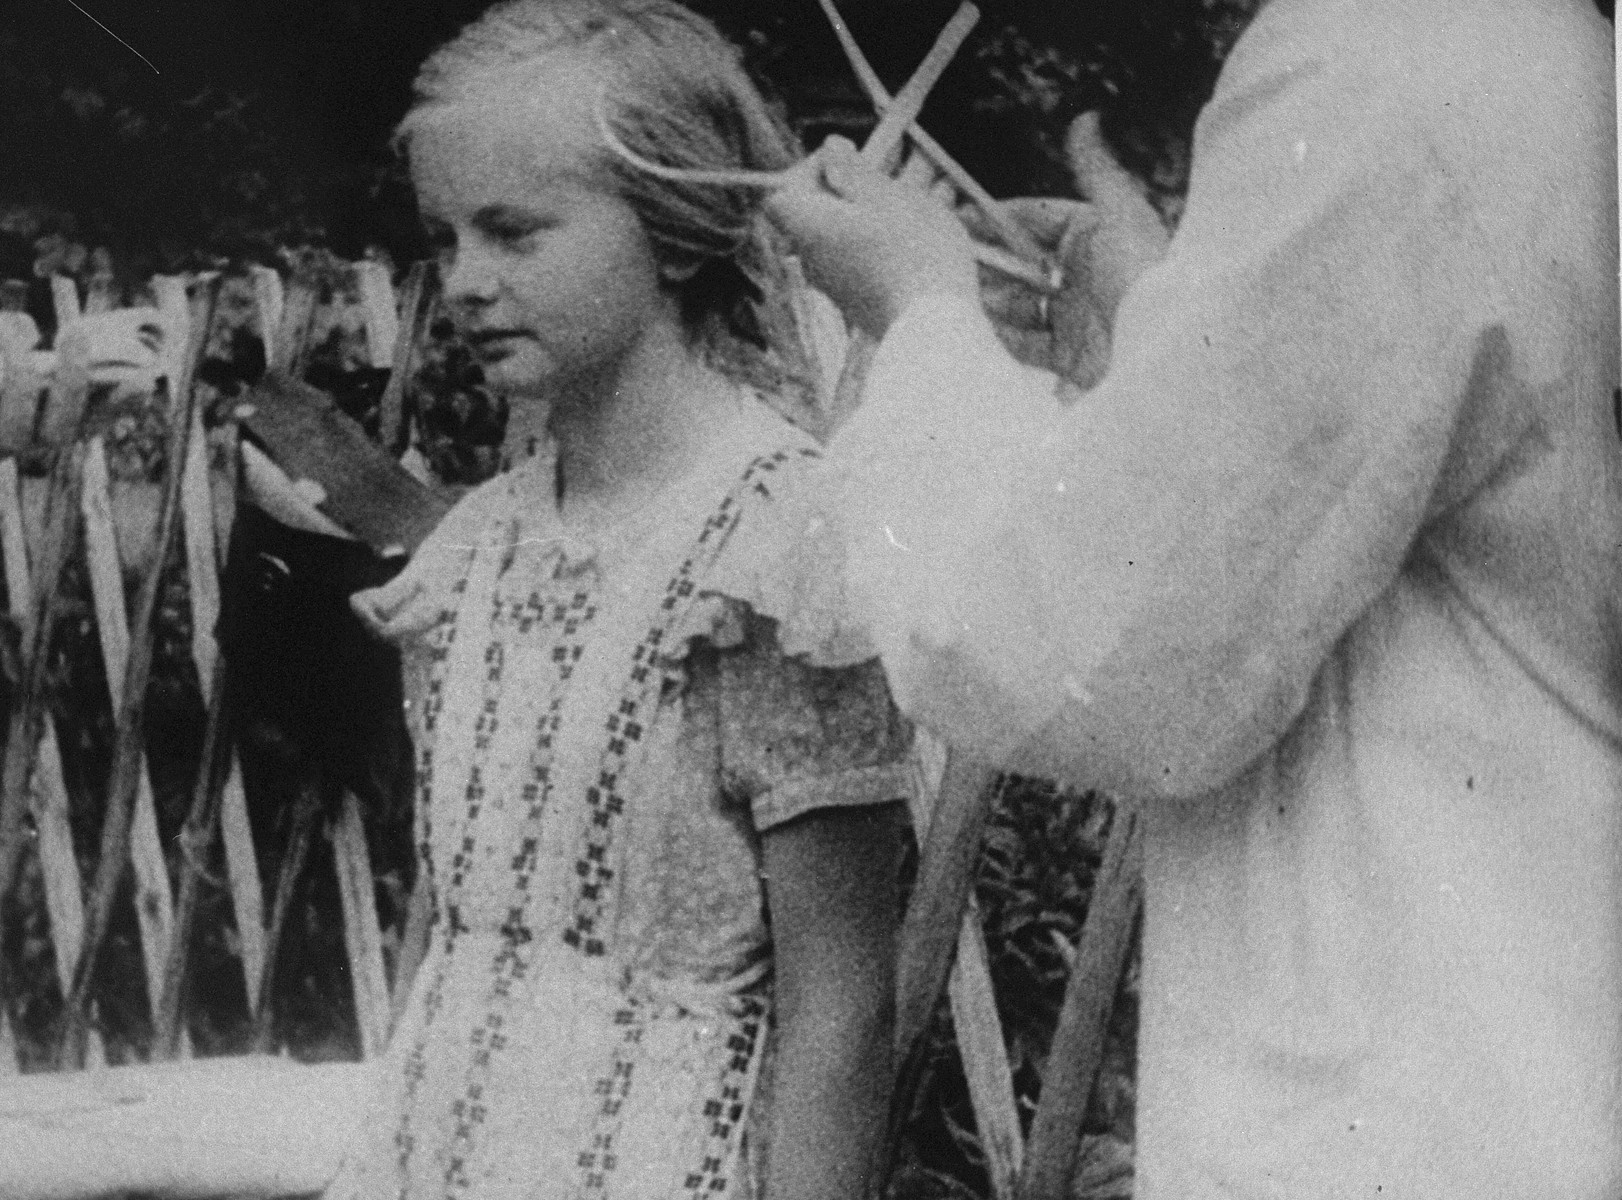 The head of a young Polish girl is measured using a caliper during her racial examination by German authorities.